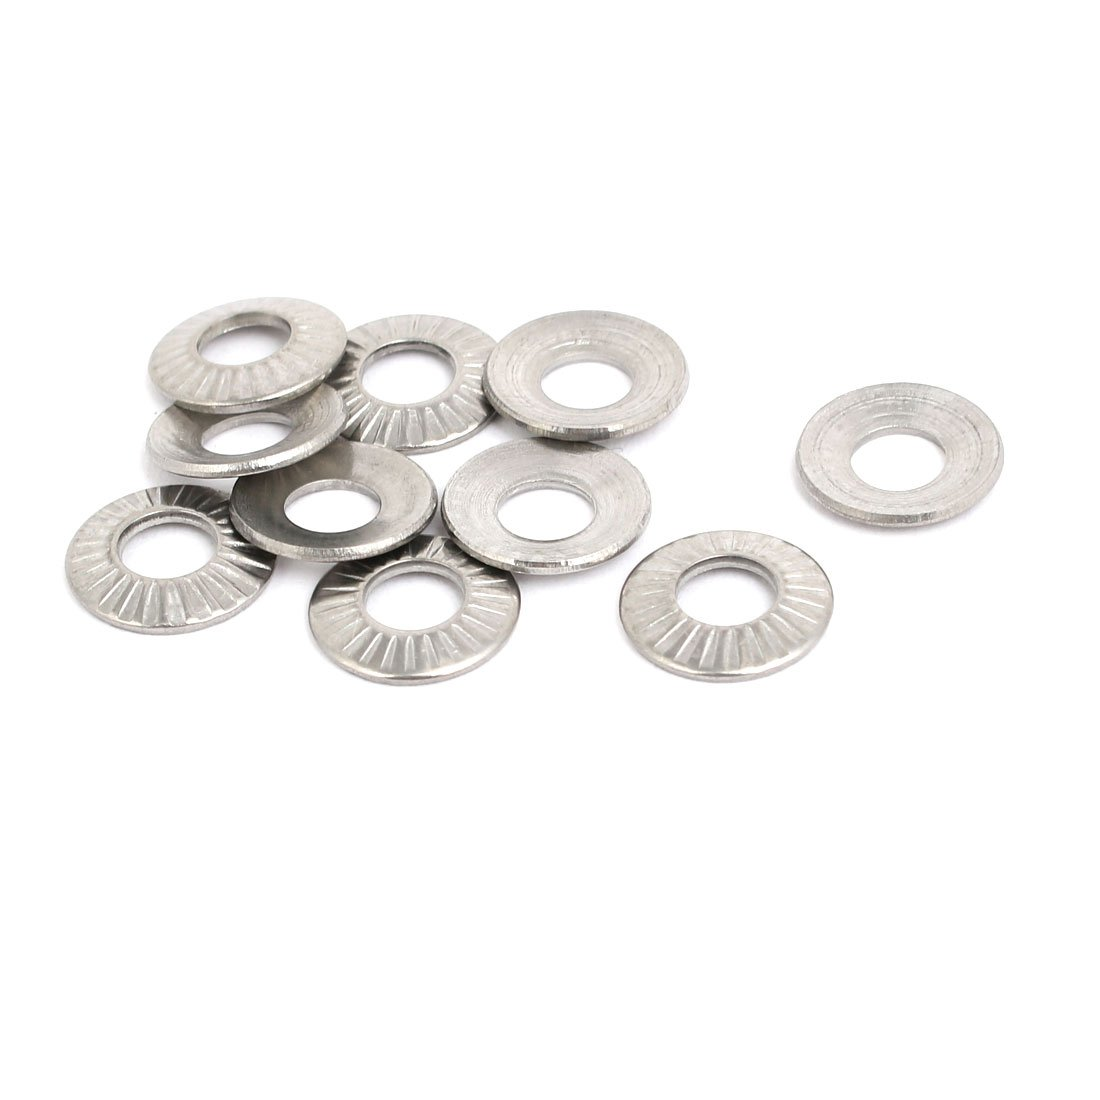 uxcell M5 Inner Diameter 304 Stainless Steel Serrated Conical Spring Washer 10pcs